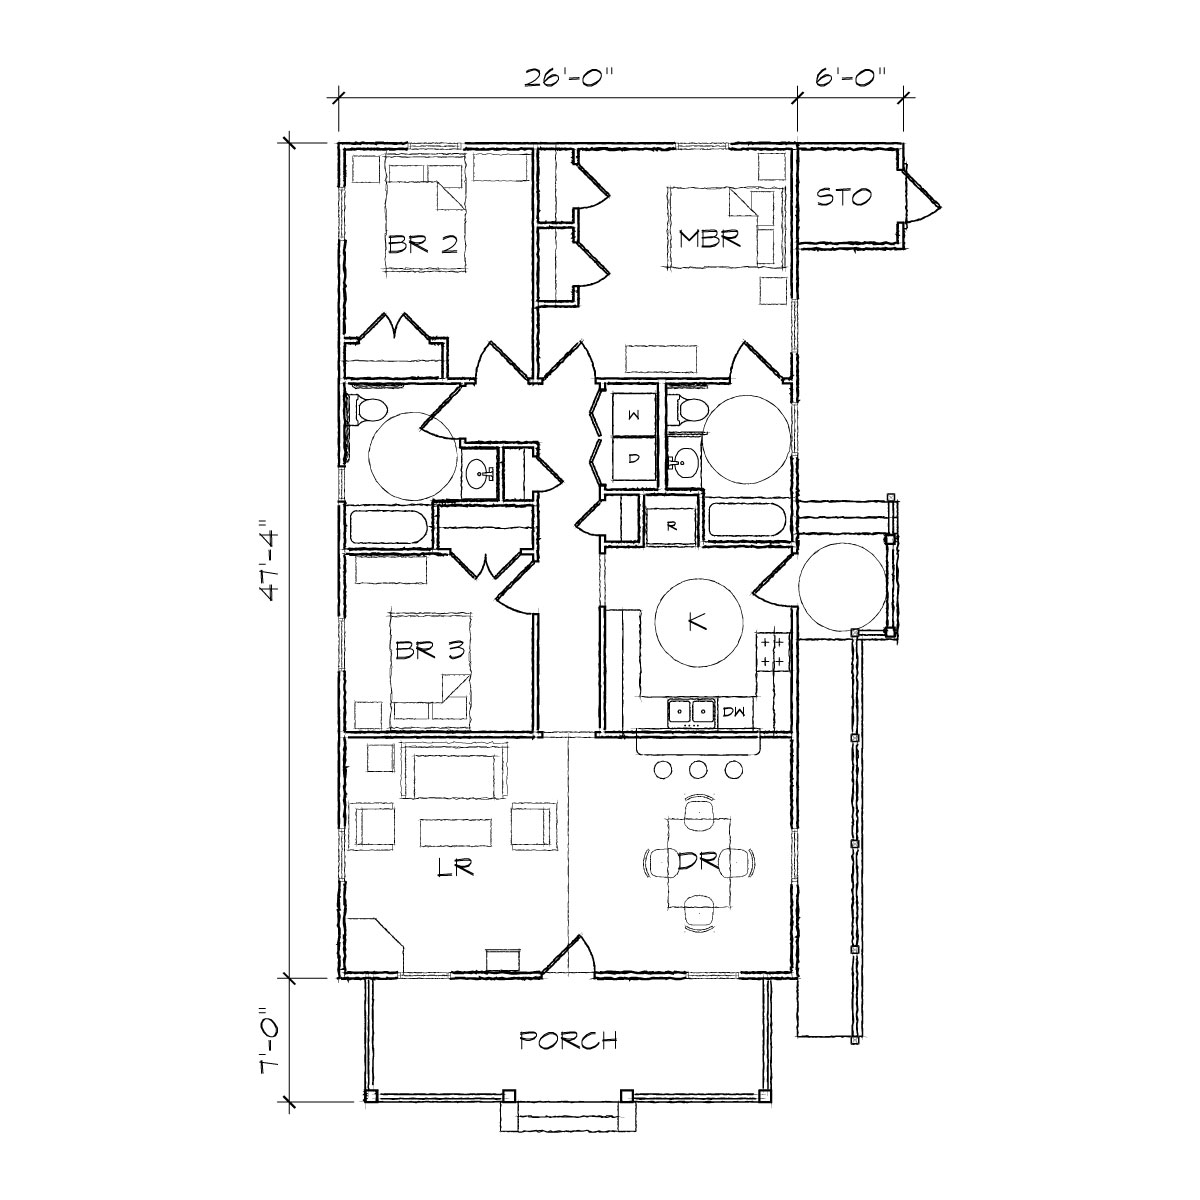 Vintage bungalow house plans bungalow floor plan floor for Vintage bungalow house plans